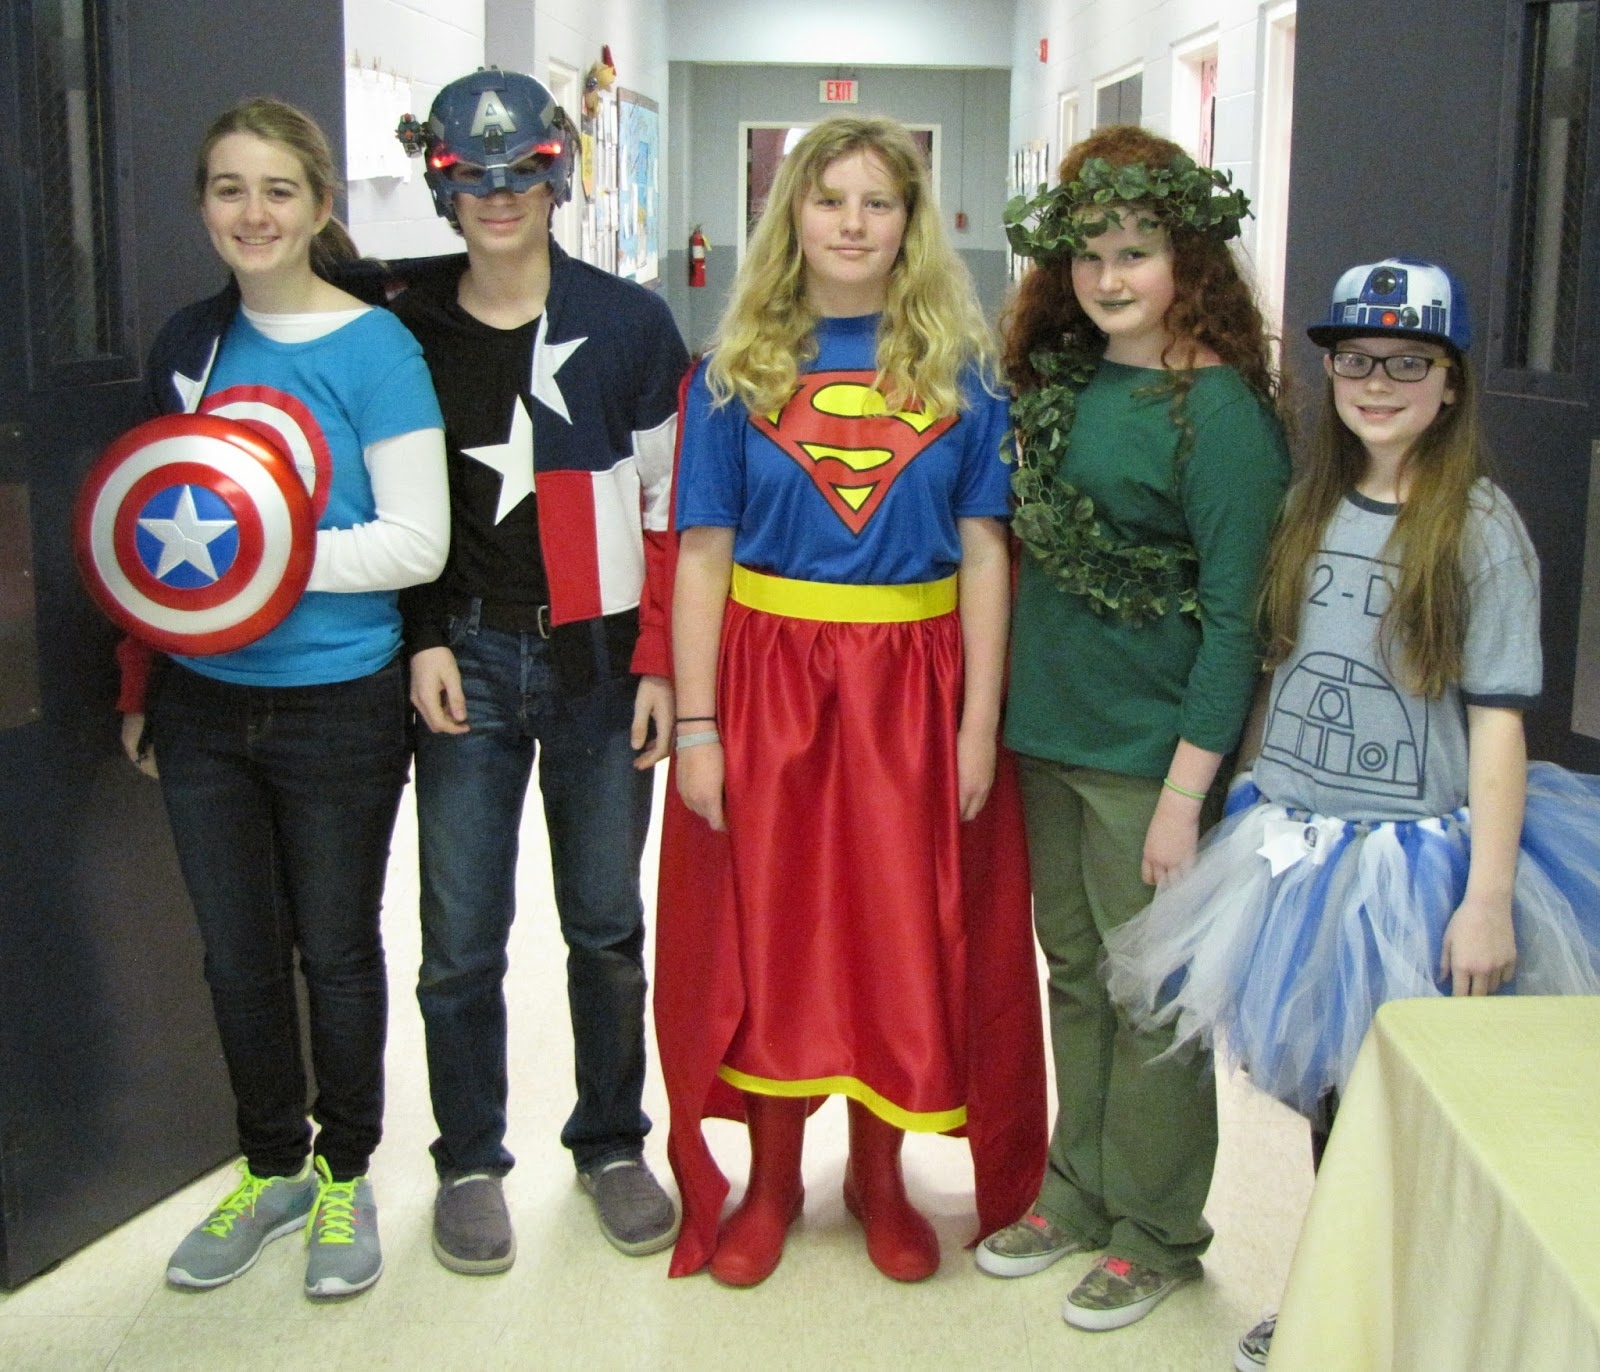 Grace Christian Academy Homecoming Day 3